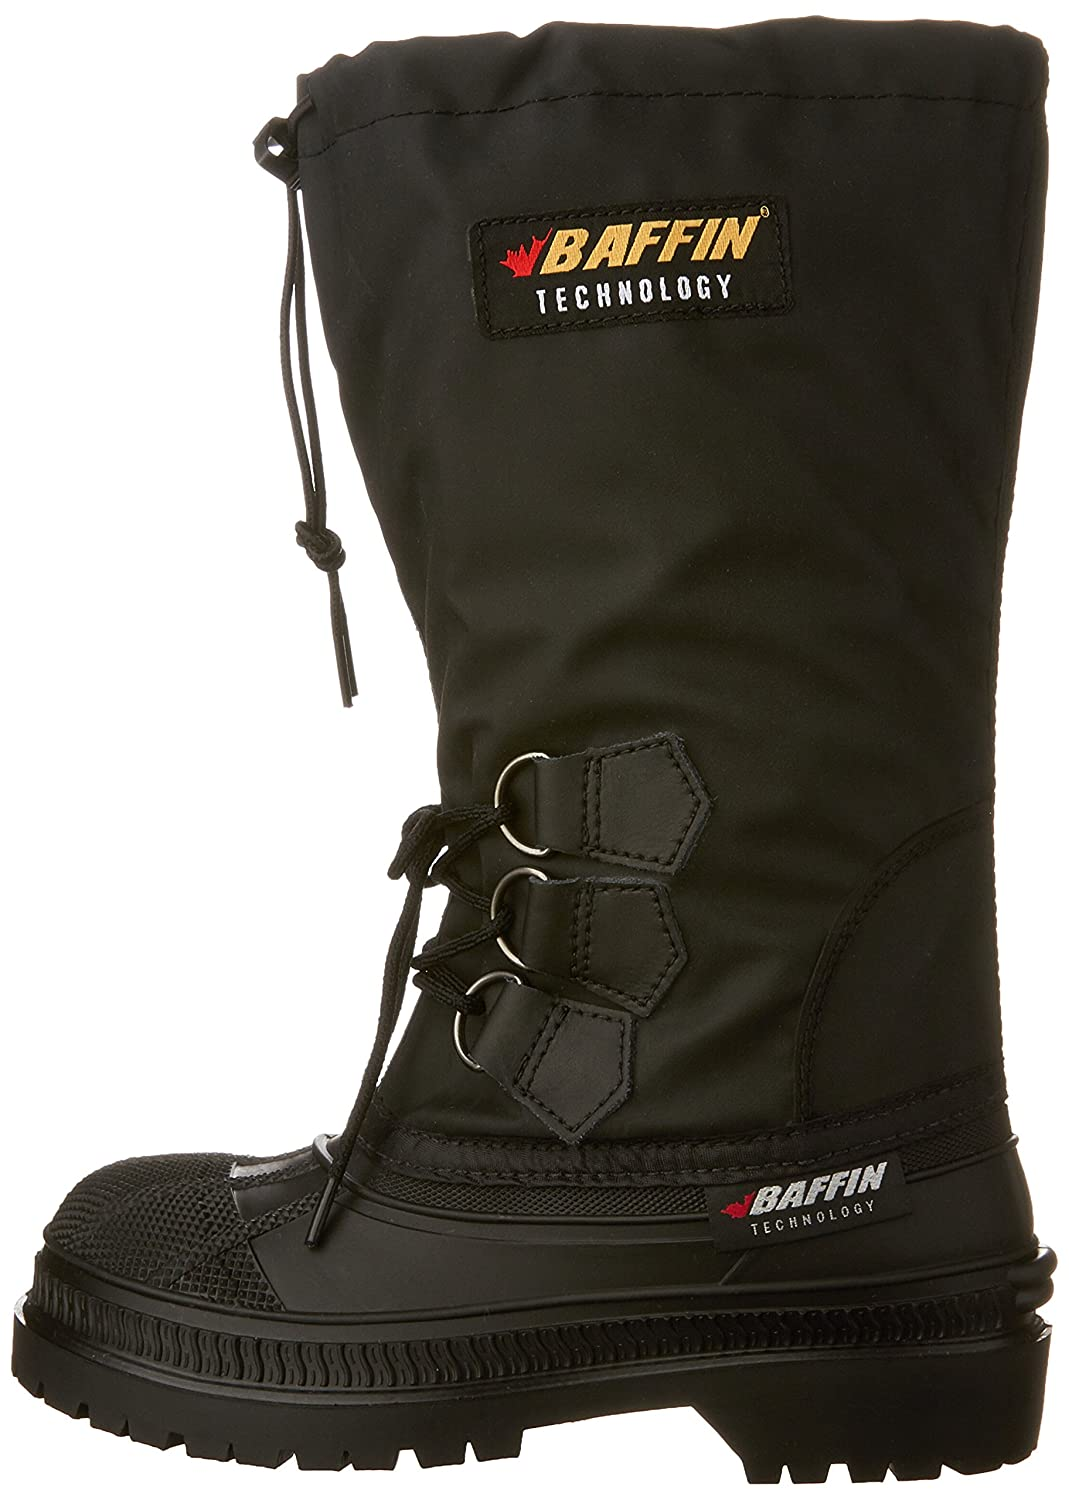 396c8fb31da Baffin Women's OilRig Canadian Made Industrial Boot